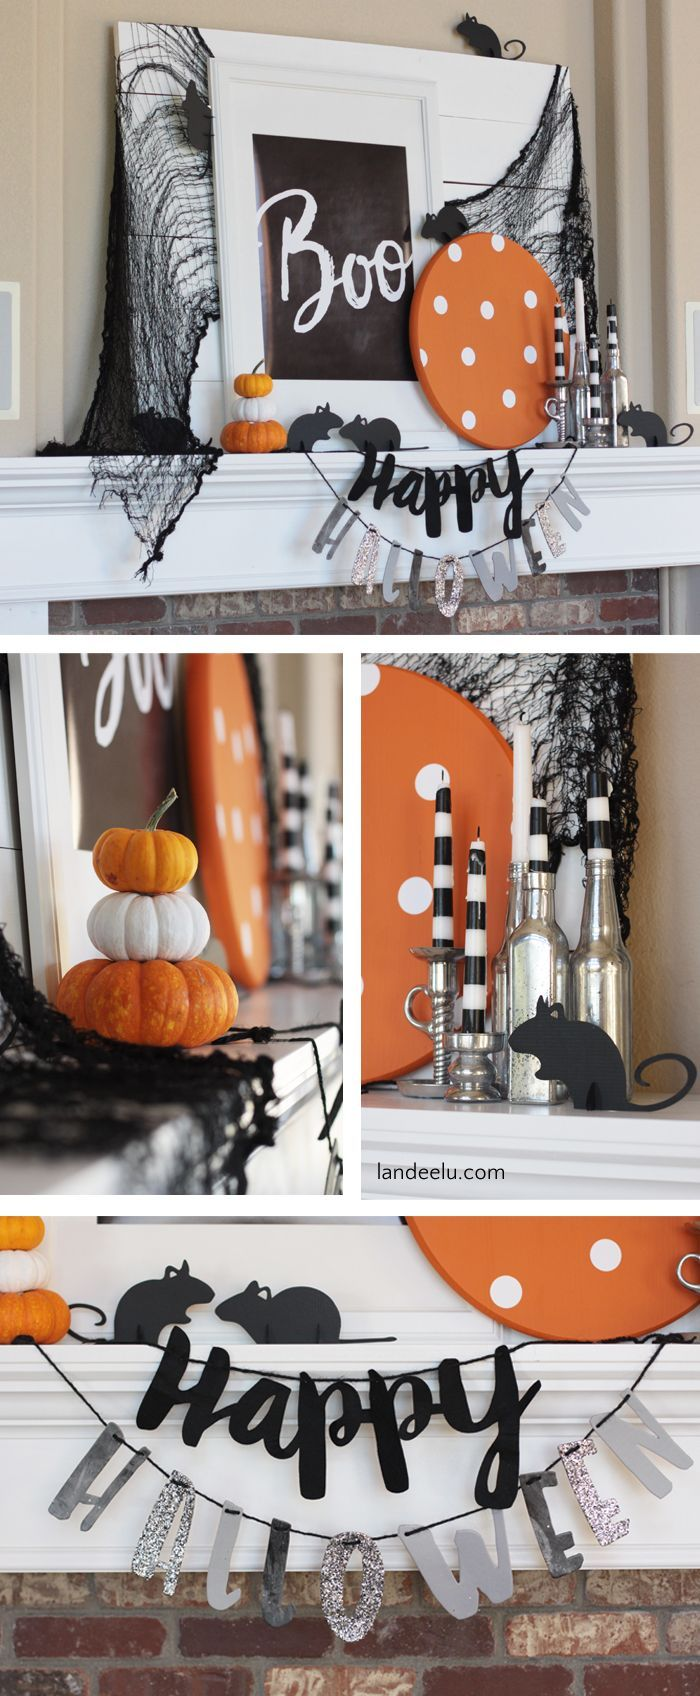 BOO Halloween Mantel with Mice DIY Halloween, Mantels and Mice - Homemade Halloween Decorations